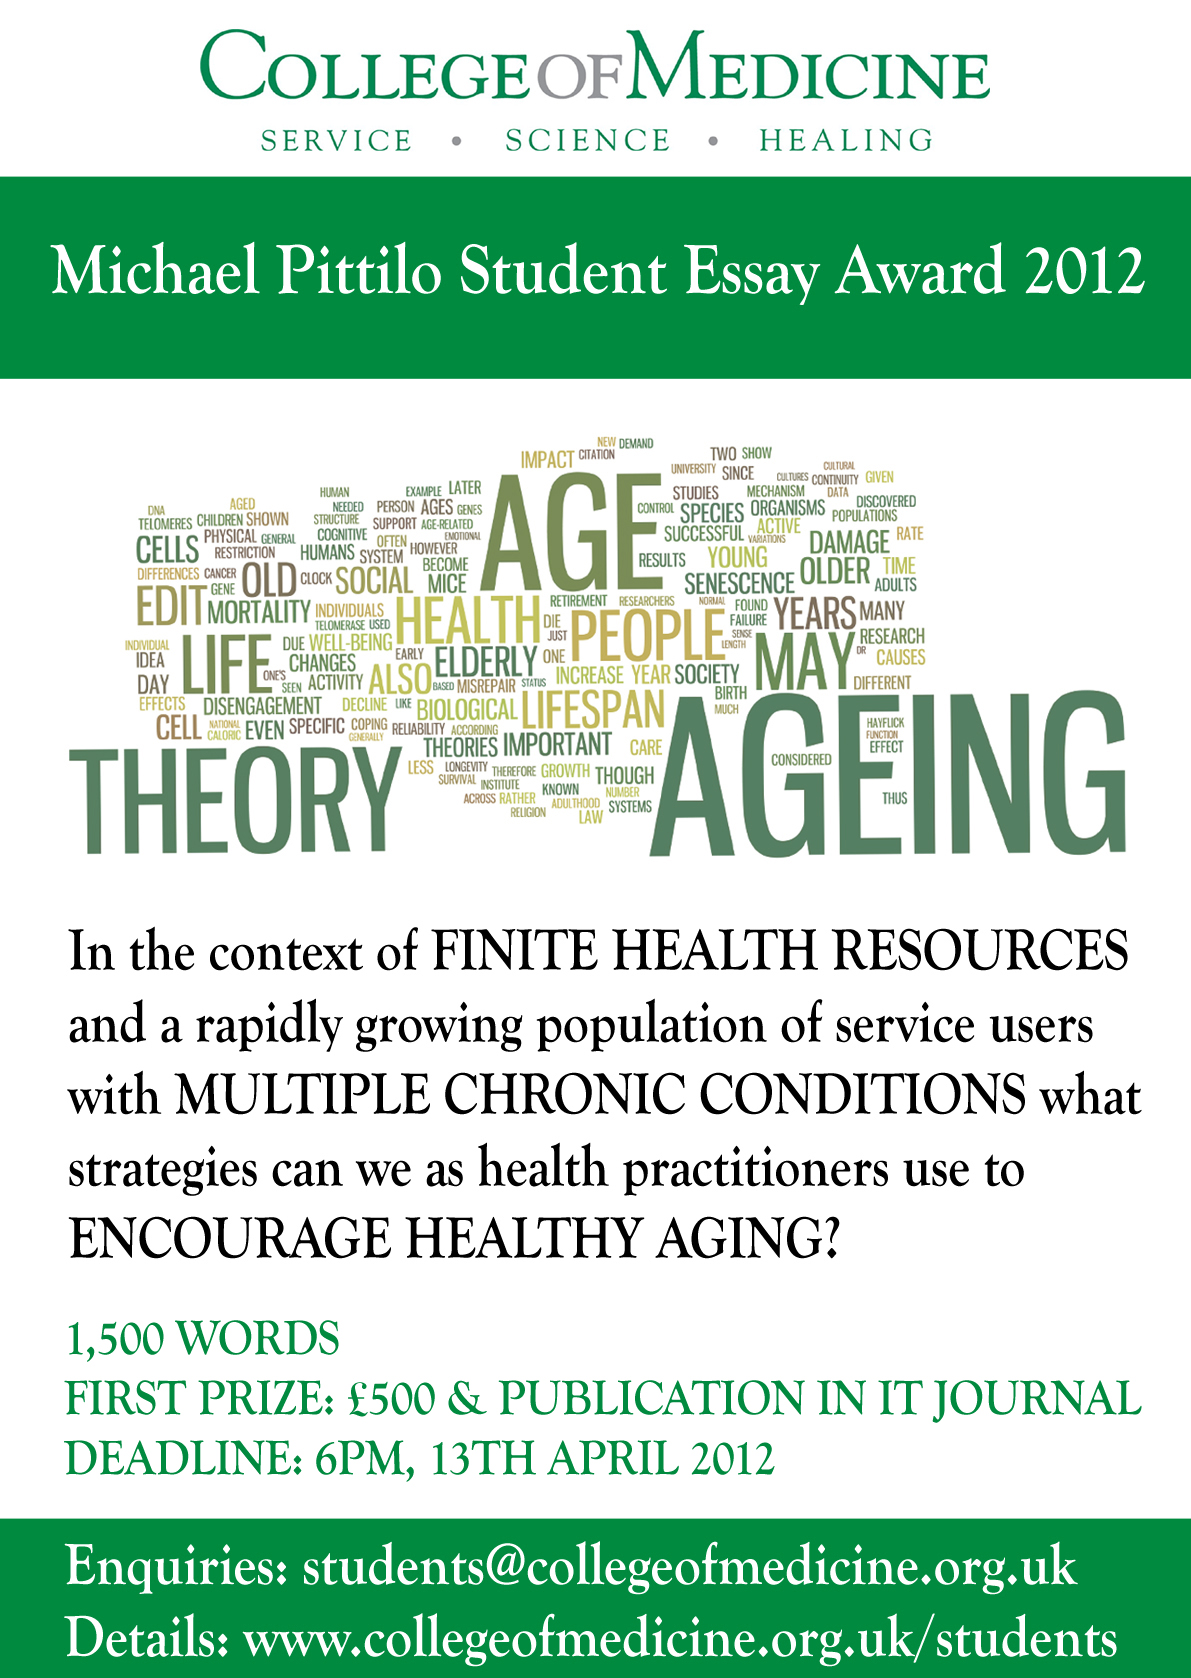 history of medicine essay prize It is awarded to medical students for an essay on a subject pertinent to ageing or old amulree essay prize winners the story of a geriatrician.